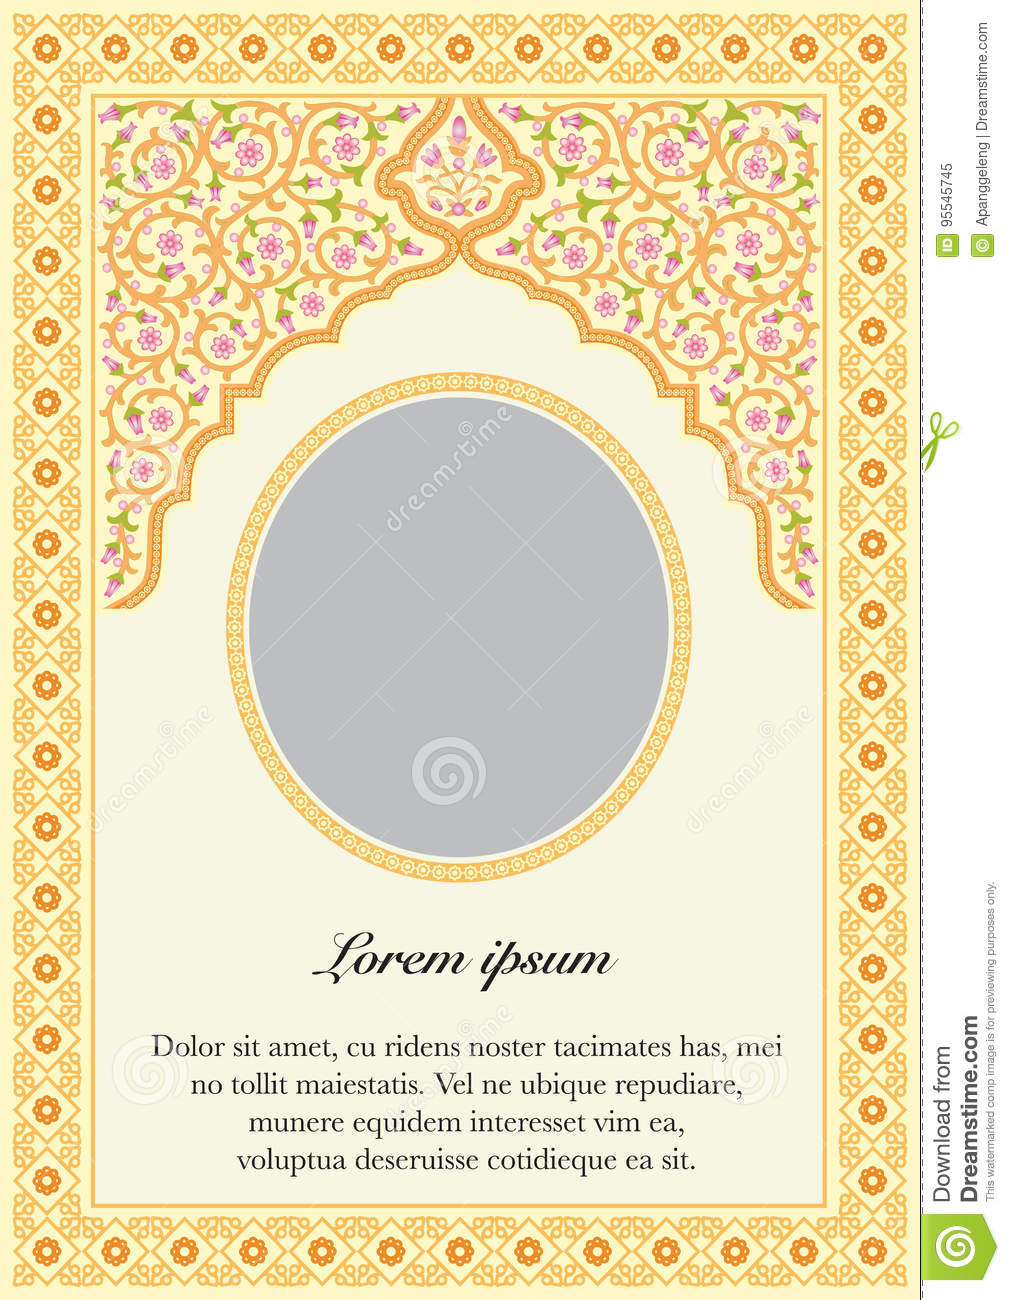 Arabic Book Cover Design Vector : Inside cartoons illustrations vector stock images